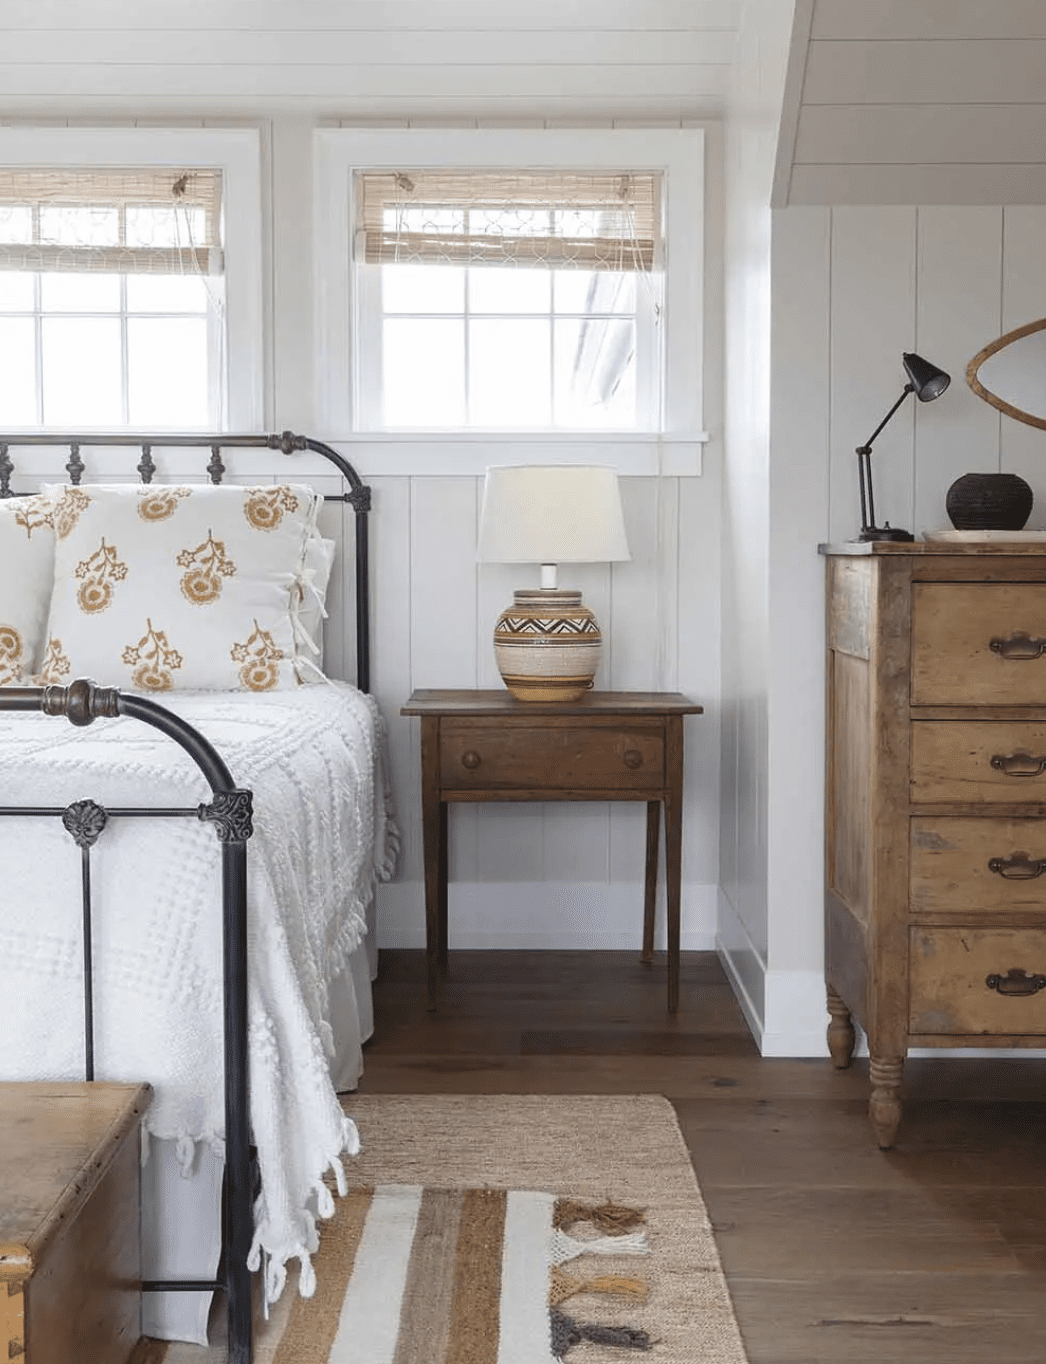 A bedroom filled with antique wood furniture and and traditional patterns (like stripes and florals)